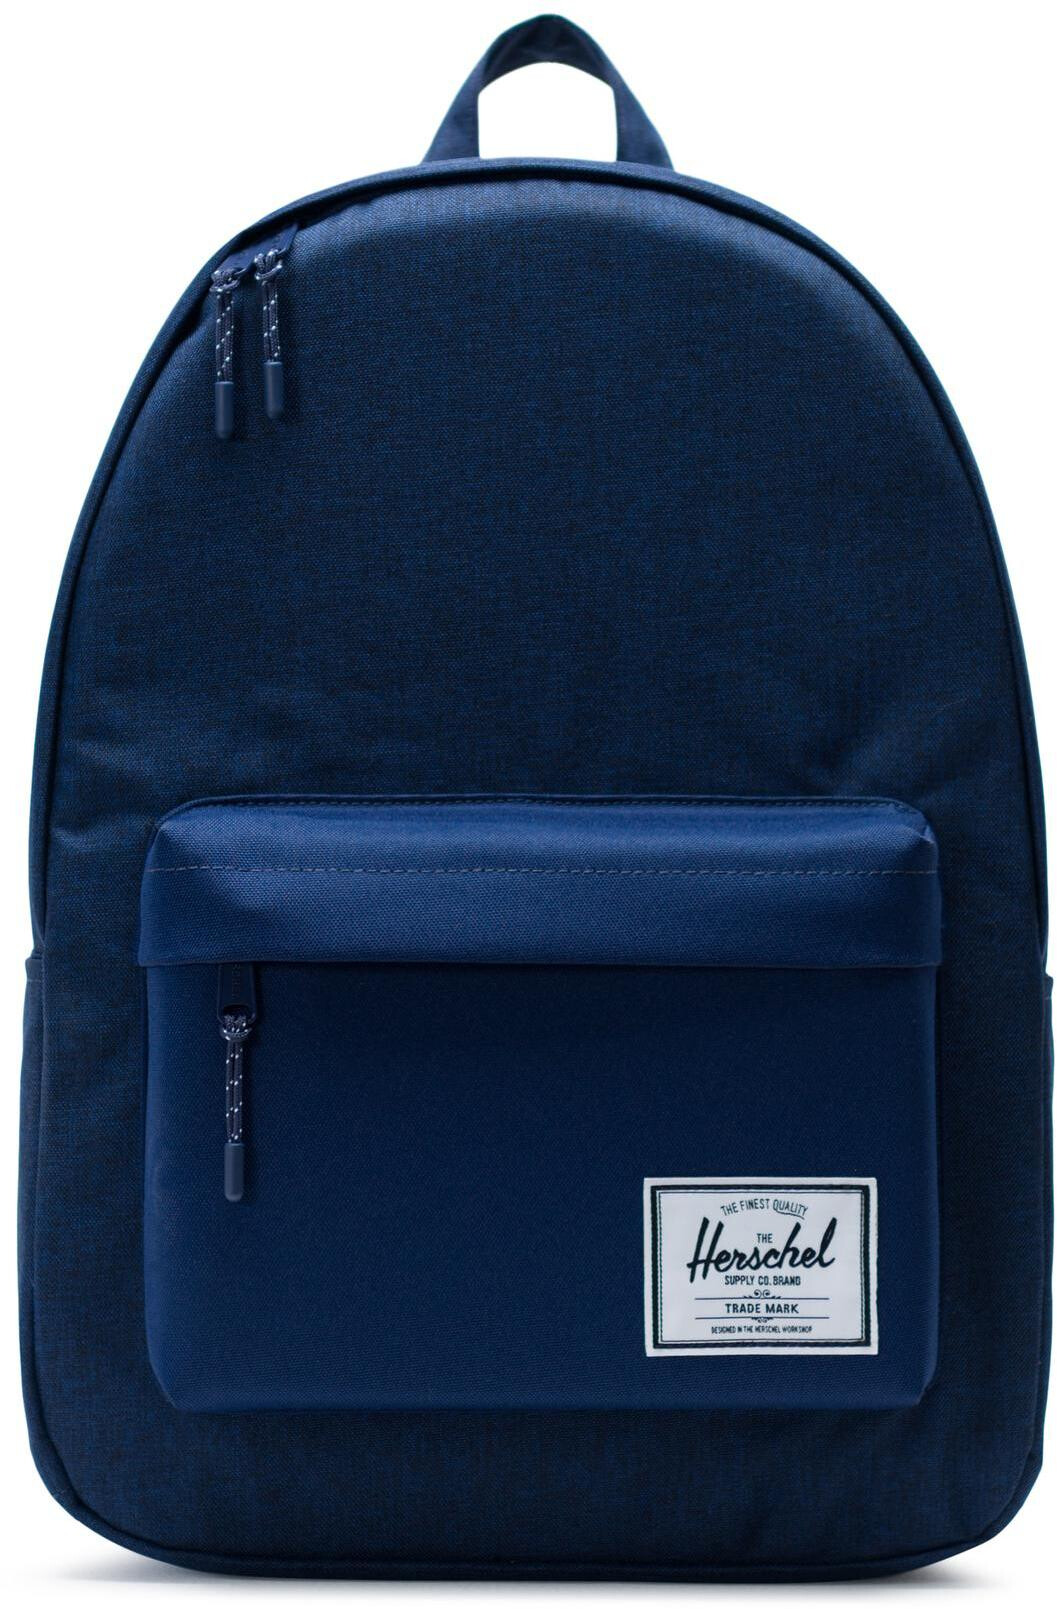 7679656688 Herschel Classic X-Large Backpack blue at Addnature.co.uk